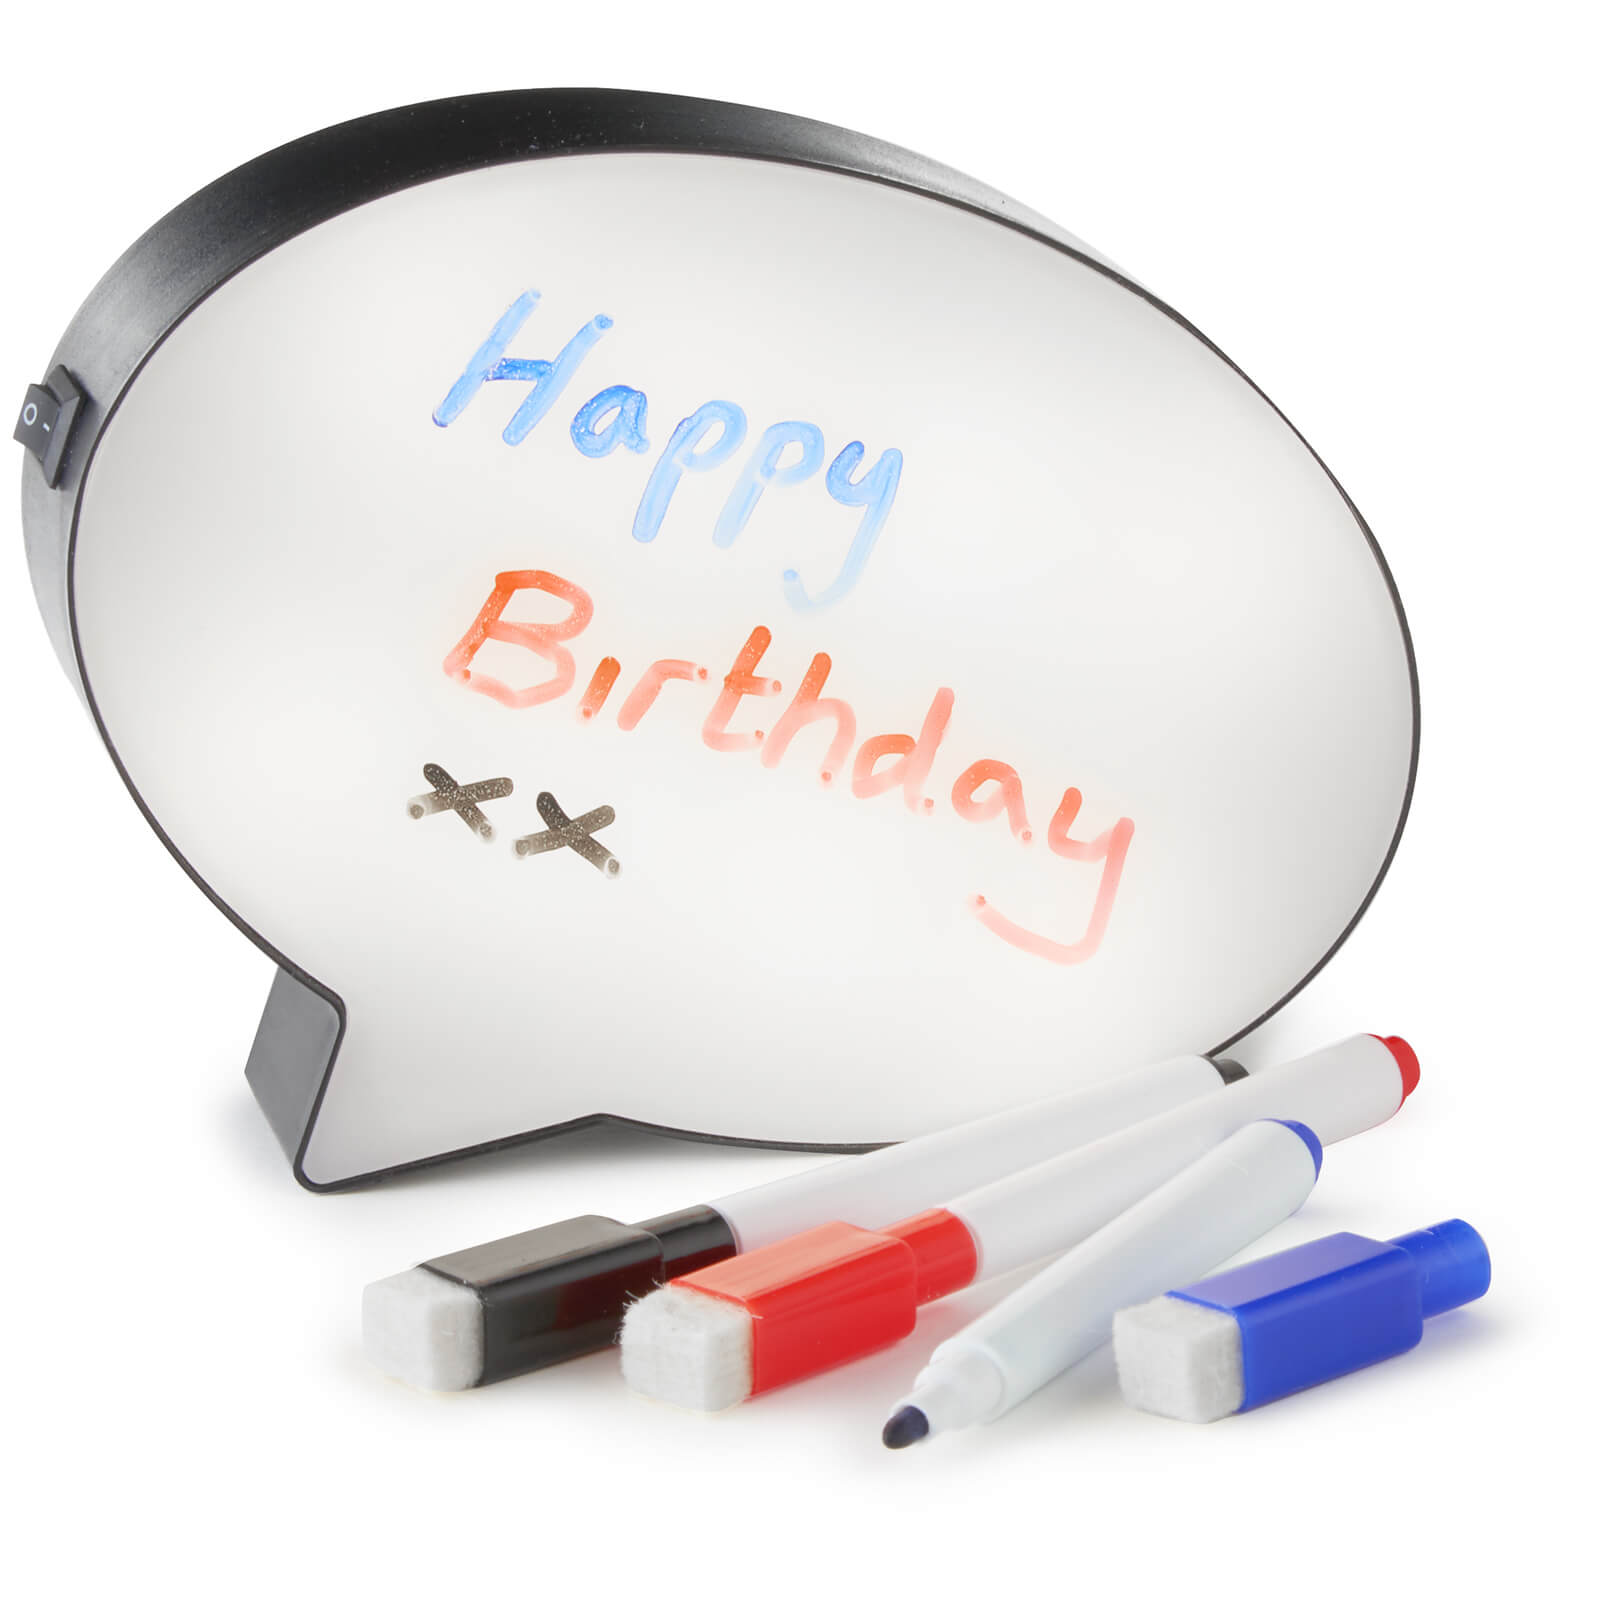 Speech Bubble Light - White/Black